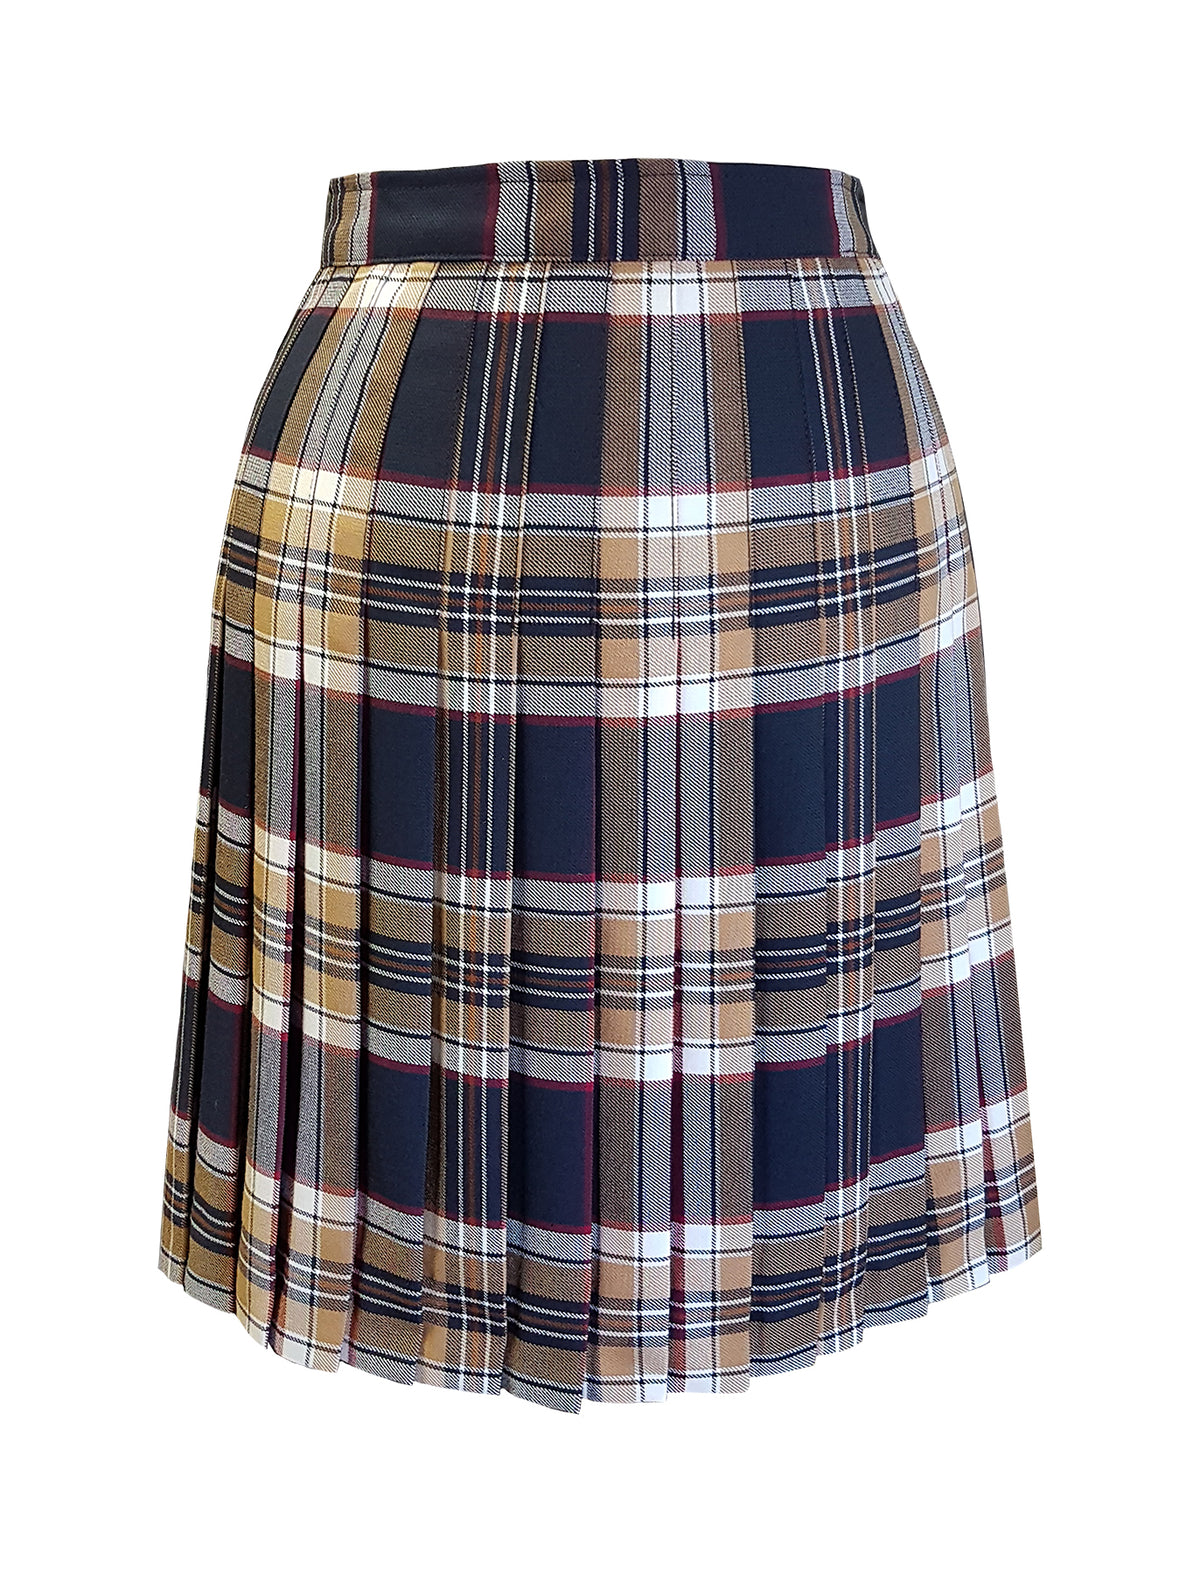 TARTAN SKIRT, REGULAR BACK, UP TO SIZE 29